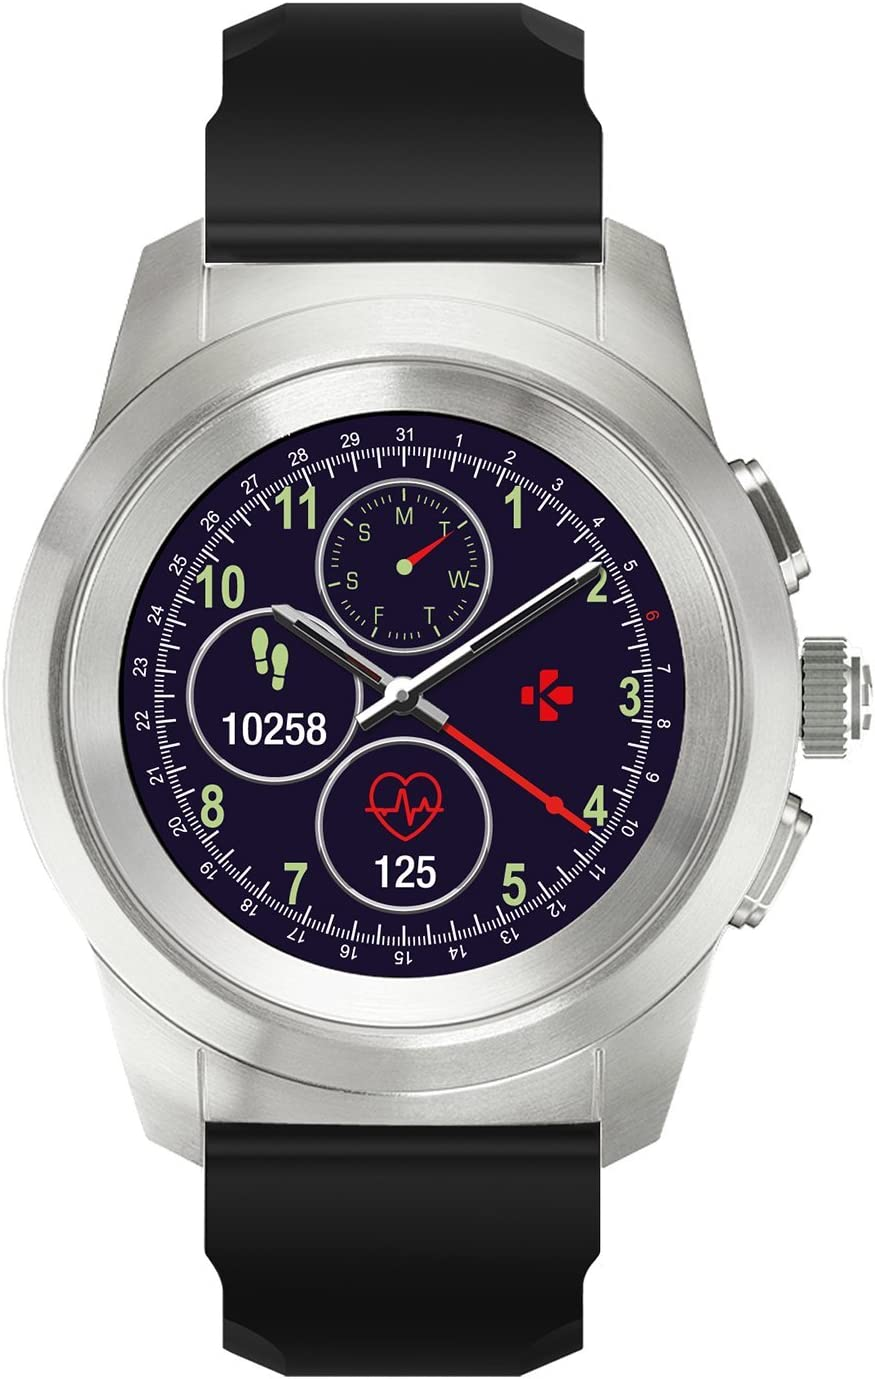 MyKronoz ZeTime Original Hybrid Smartwatch 39mm with Mechanical Hands Over a Color Touch Screen – Brushed Silver/Black Silicon Flat - New Never Opened ...